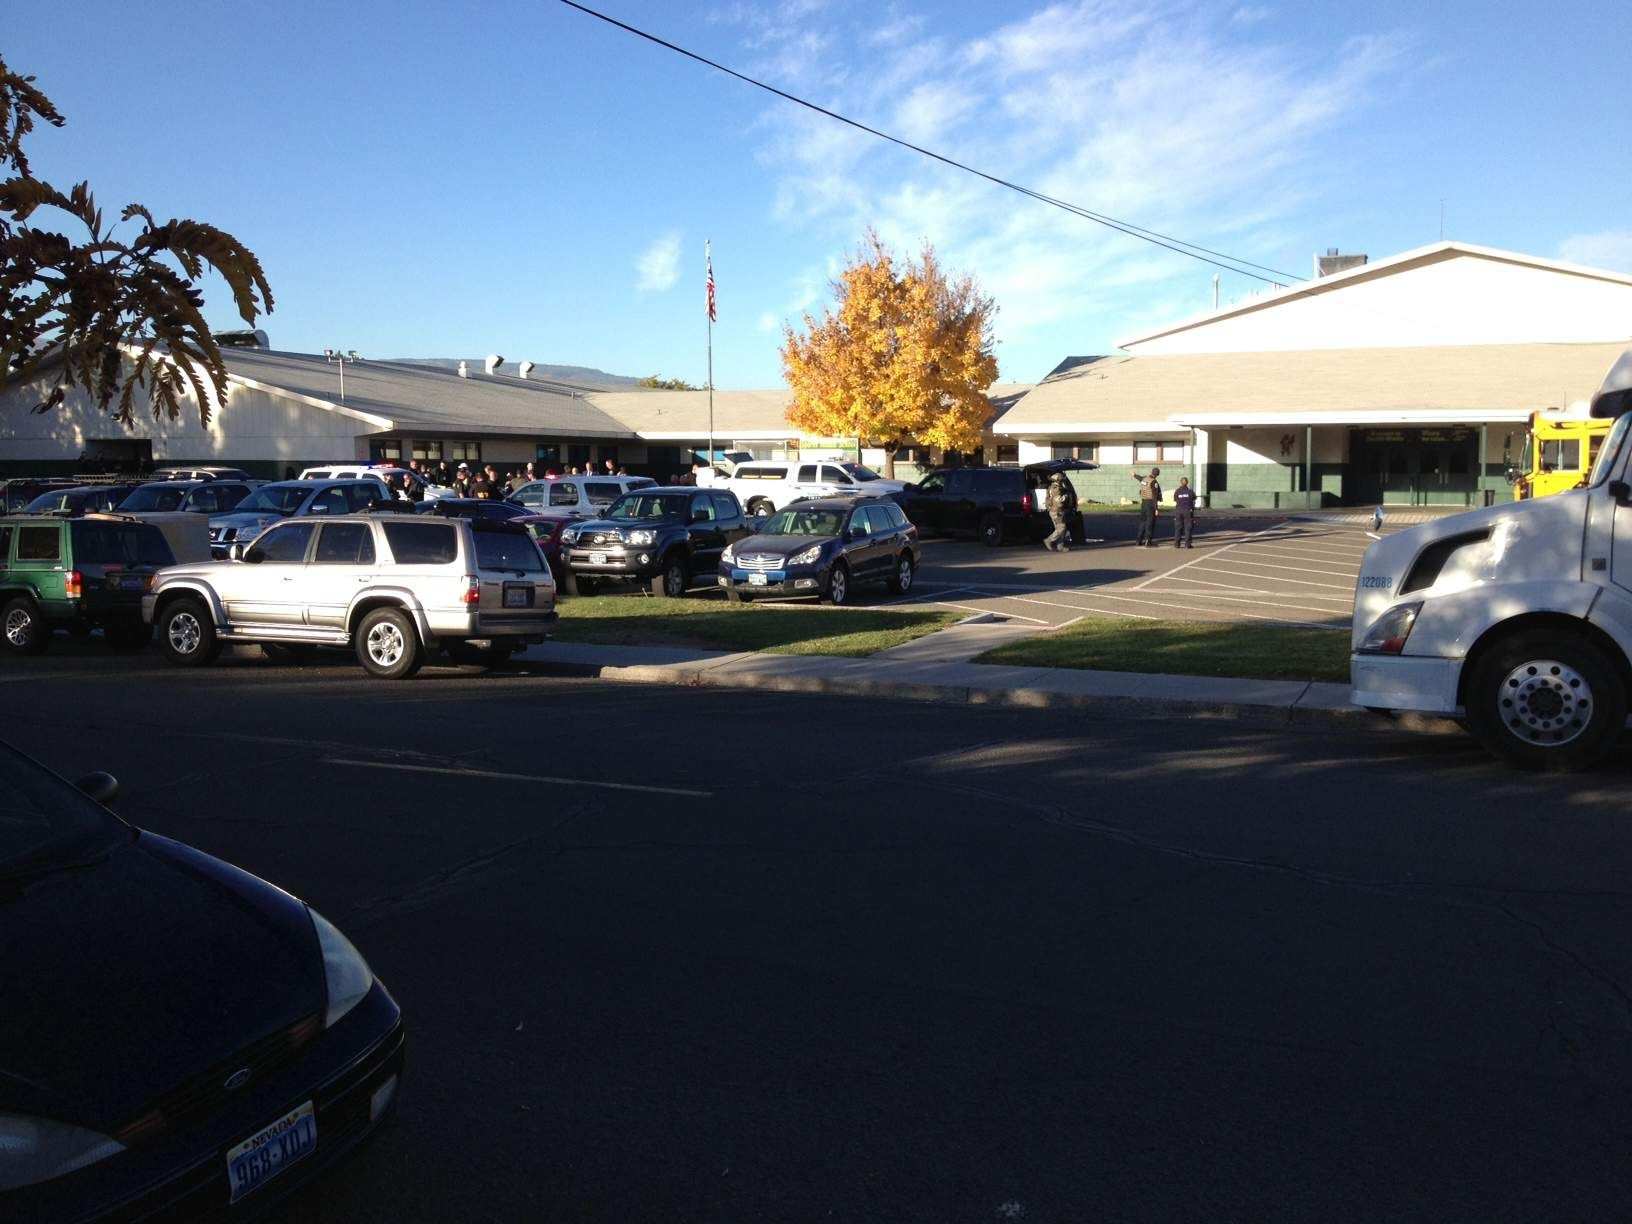 Sparks Middle School shooting: 2 in critical condition, 2 dead including shooter